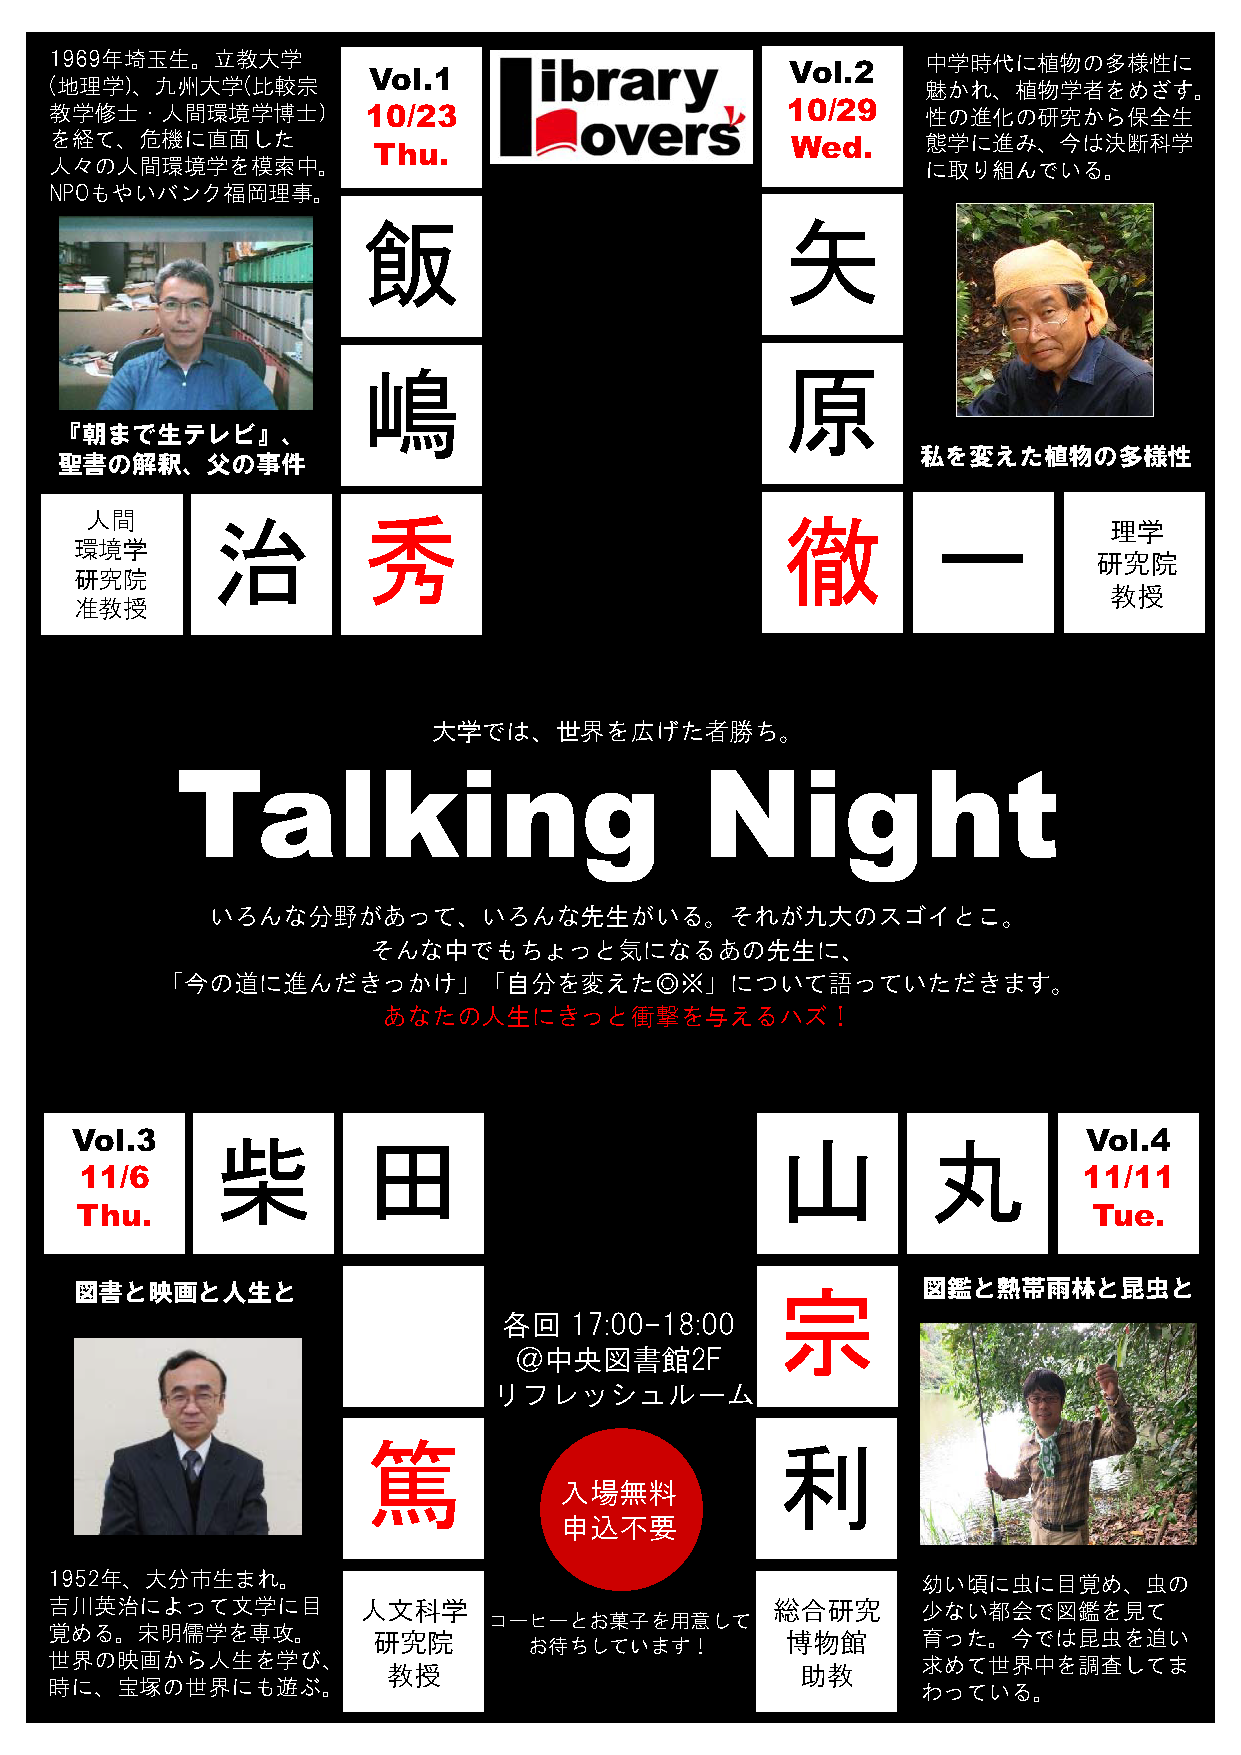 Talking Night